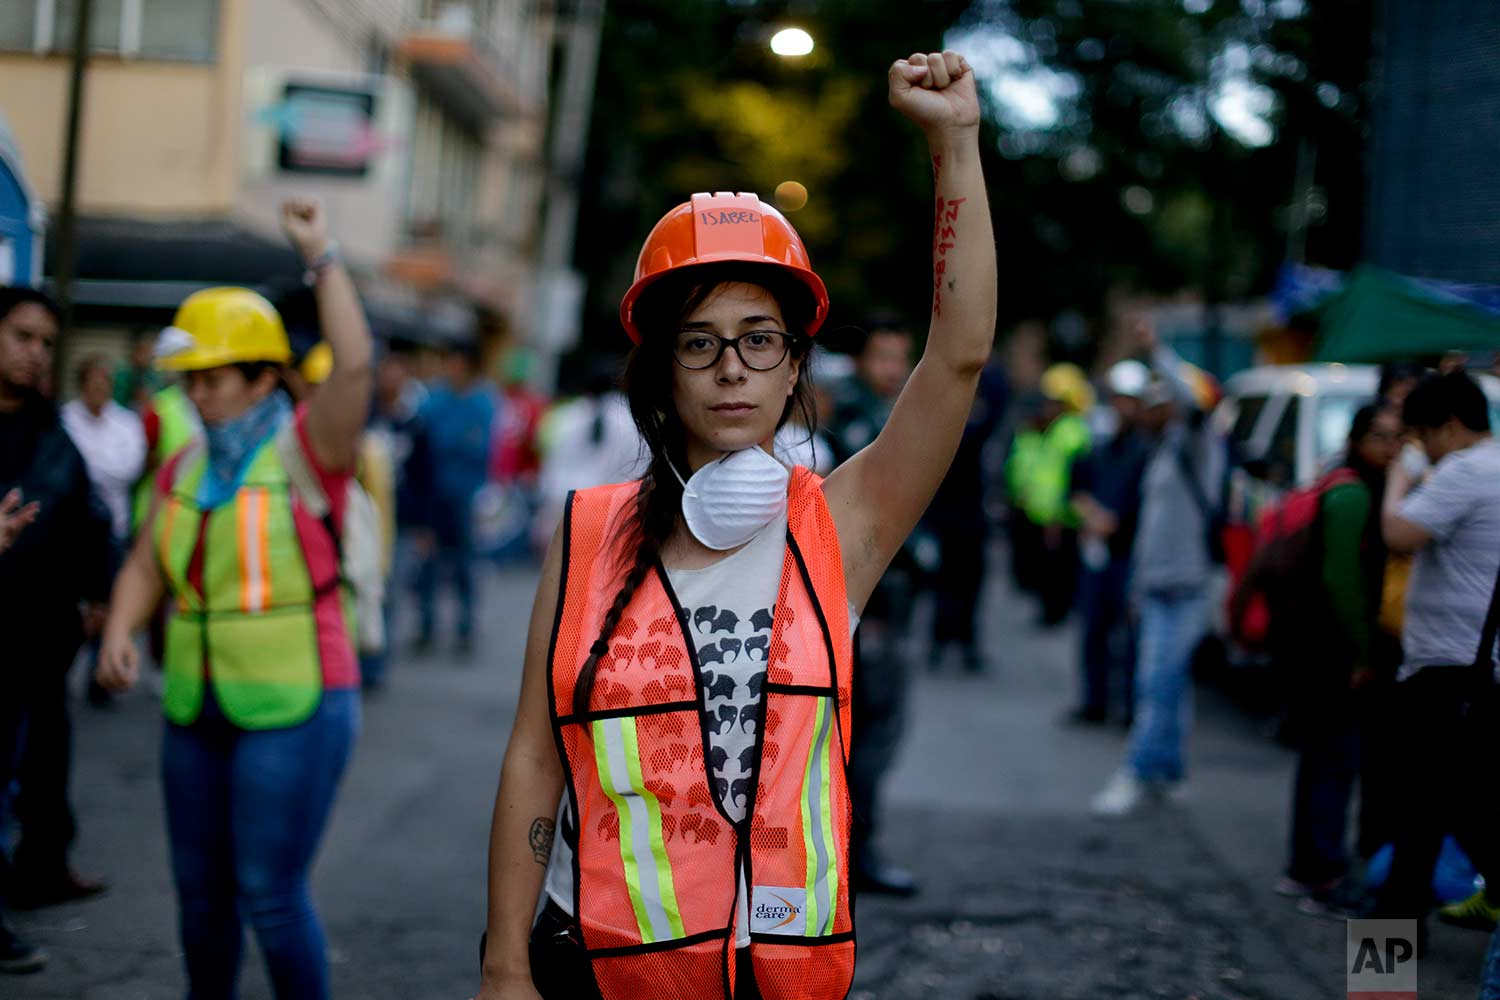 """Isabel Campana, 28, holds up a closed fist as a gesture to maintain silence outside a collapsed building after an earthquake, Sept. 22, 2017,in Mexico City. Campana said she was filming a movie when she and her crew felt the earthquake on Sept. 19, but were not allowed to stop filming and felt conflicted between her job and running to volunteer in the search and rescue efforts. """"I felt impotent when not able to leave immediately to help. It creates a moral conflict. It feels good to know when there are disasters, people come out to help."""" After finishing work, Campana said she started volunteering. (AP Photo/Natacha Pisarenko)"""